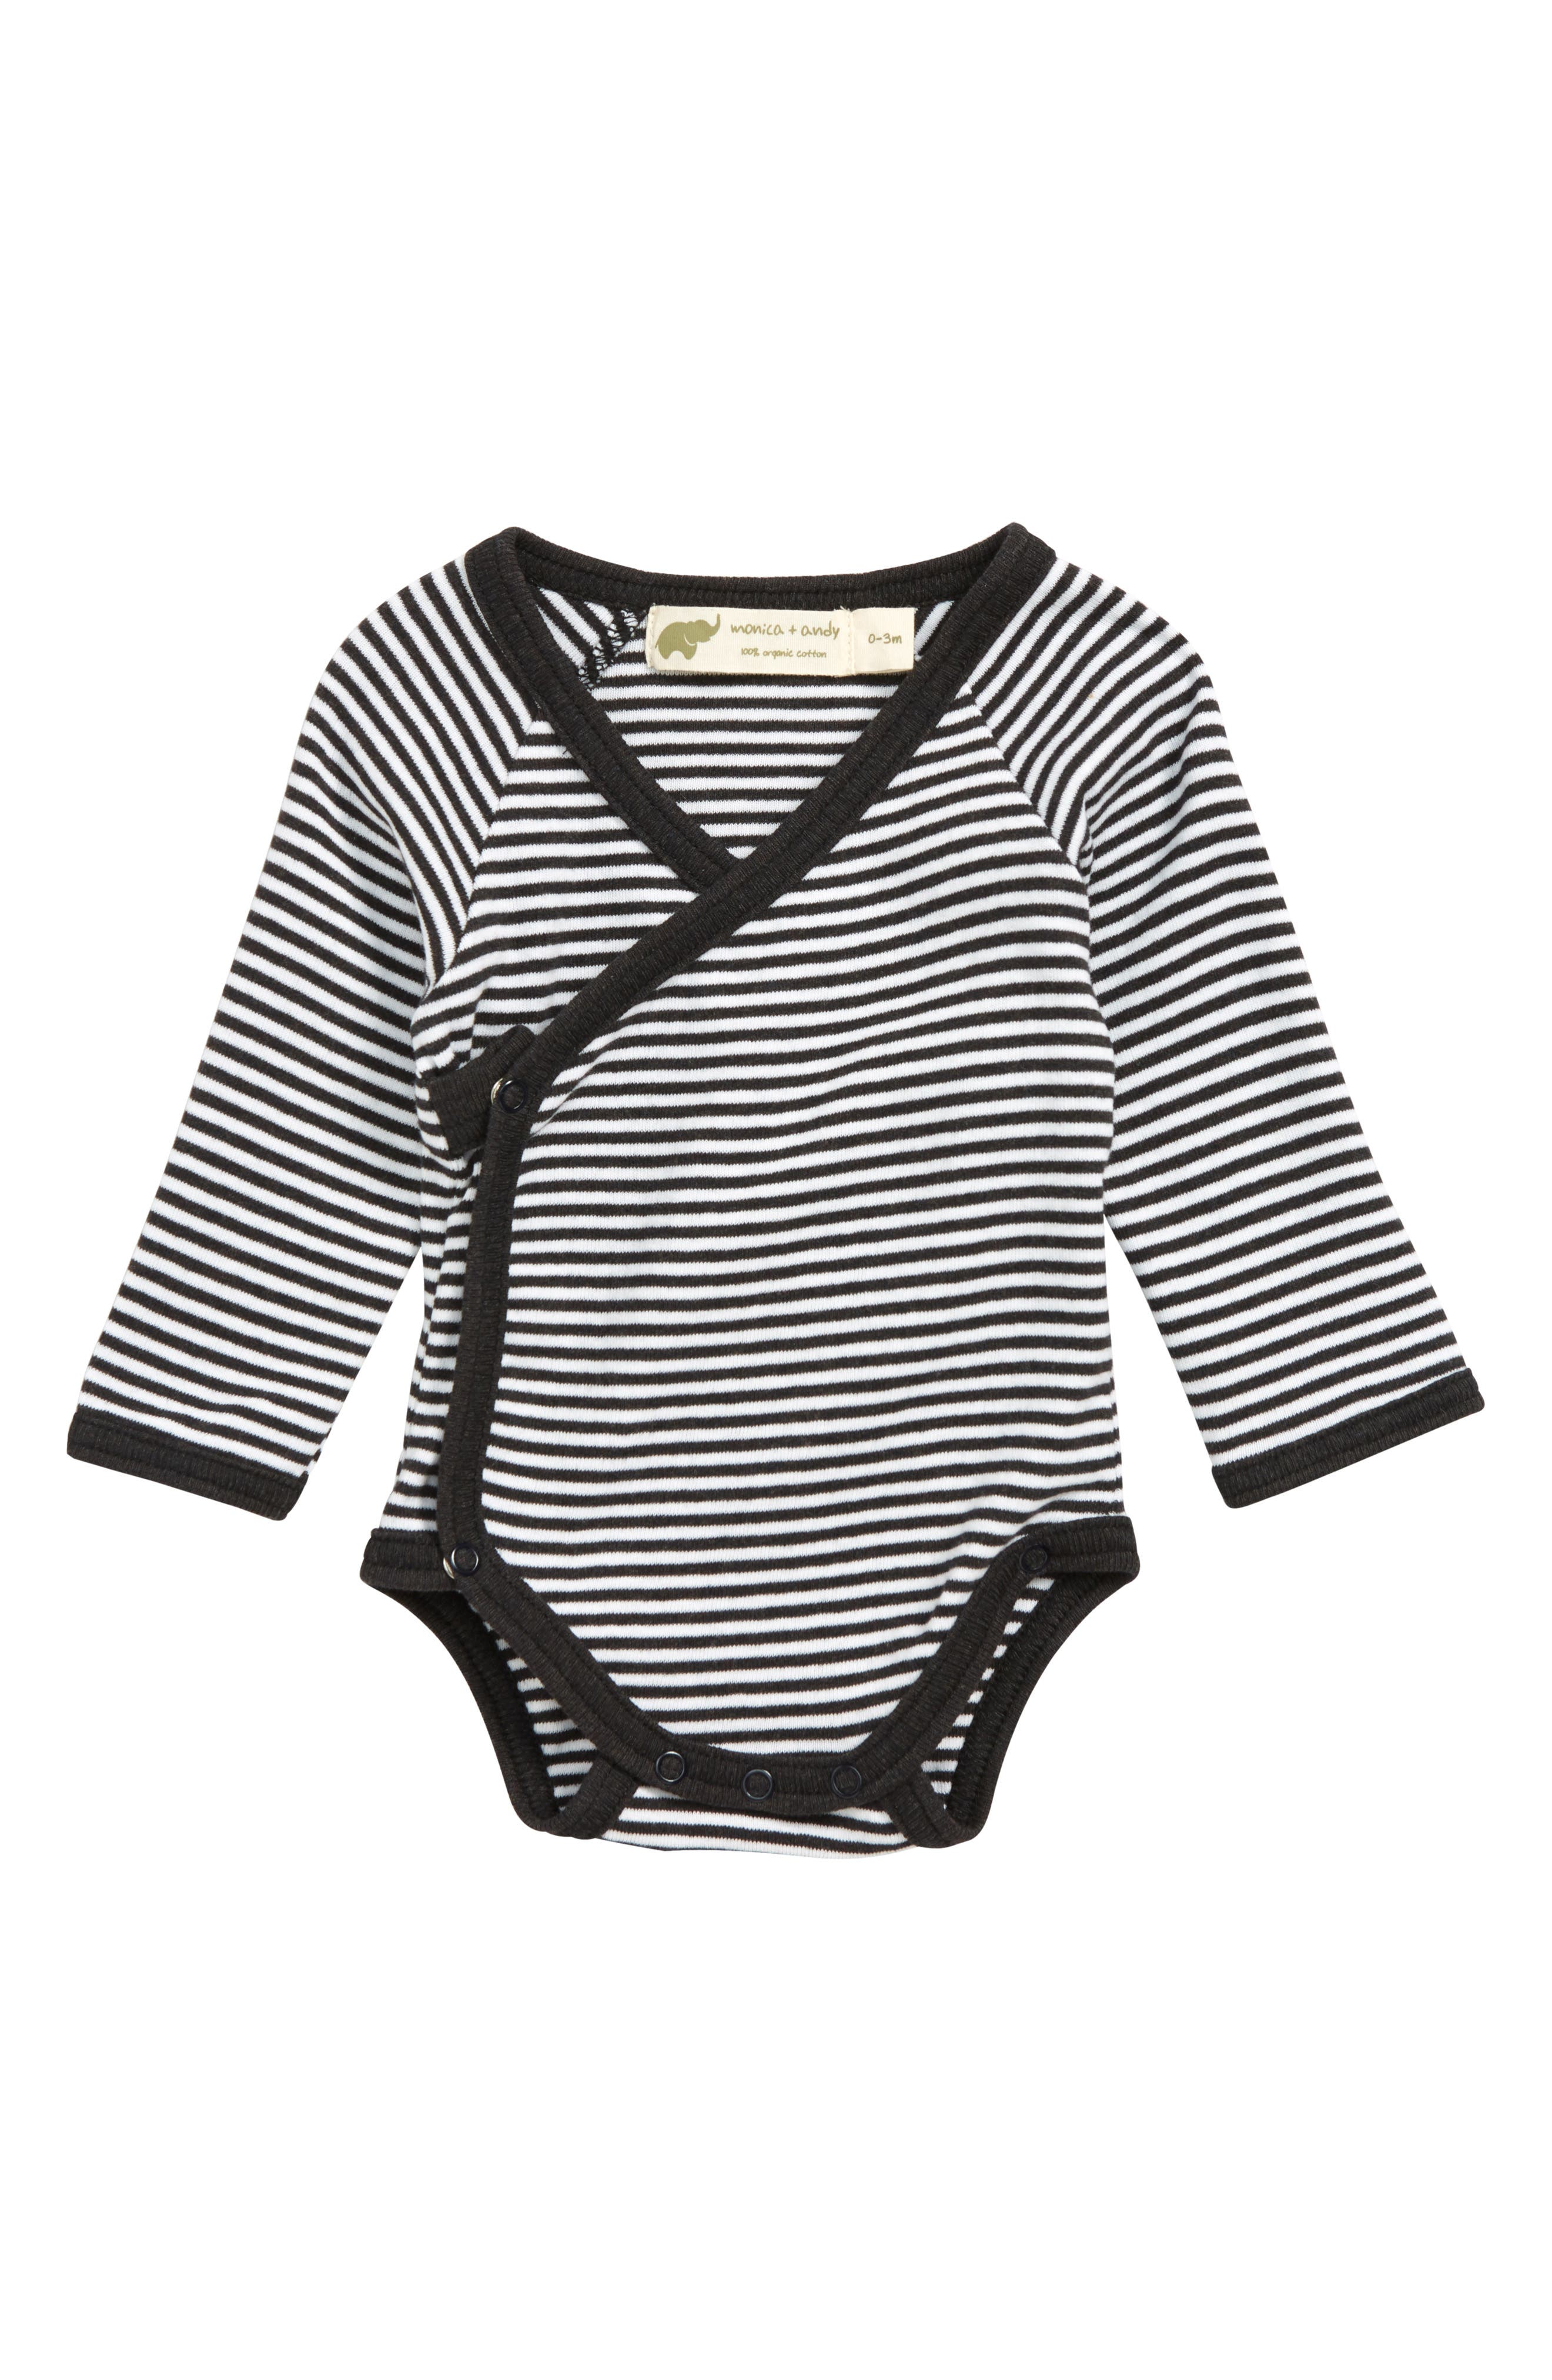 MONICA + ANDY, Lucky Organic Cotton Wrap Bodysuit, Main thumbnail 1, color, 100